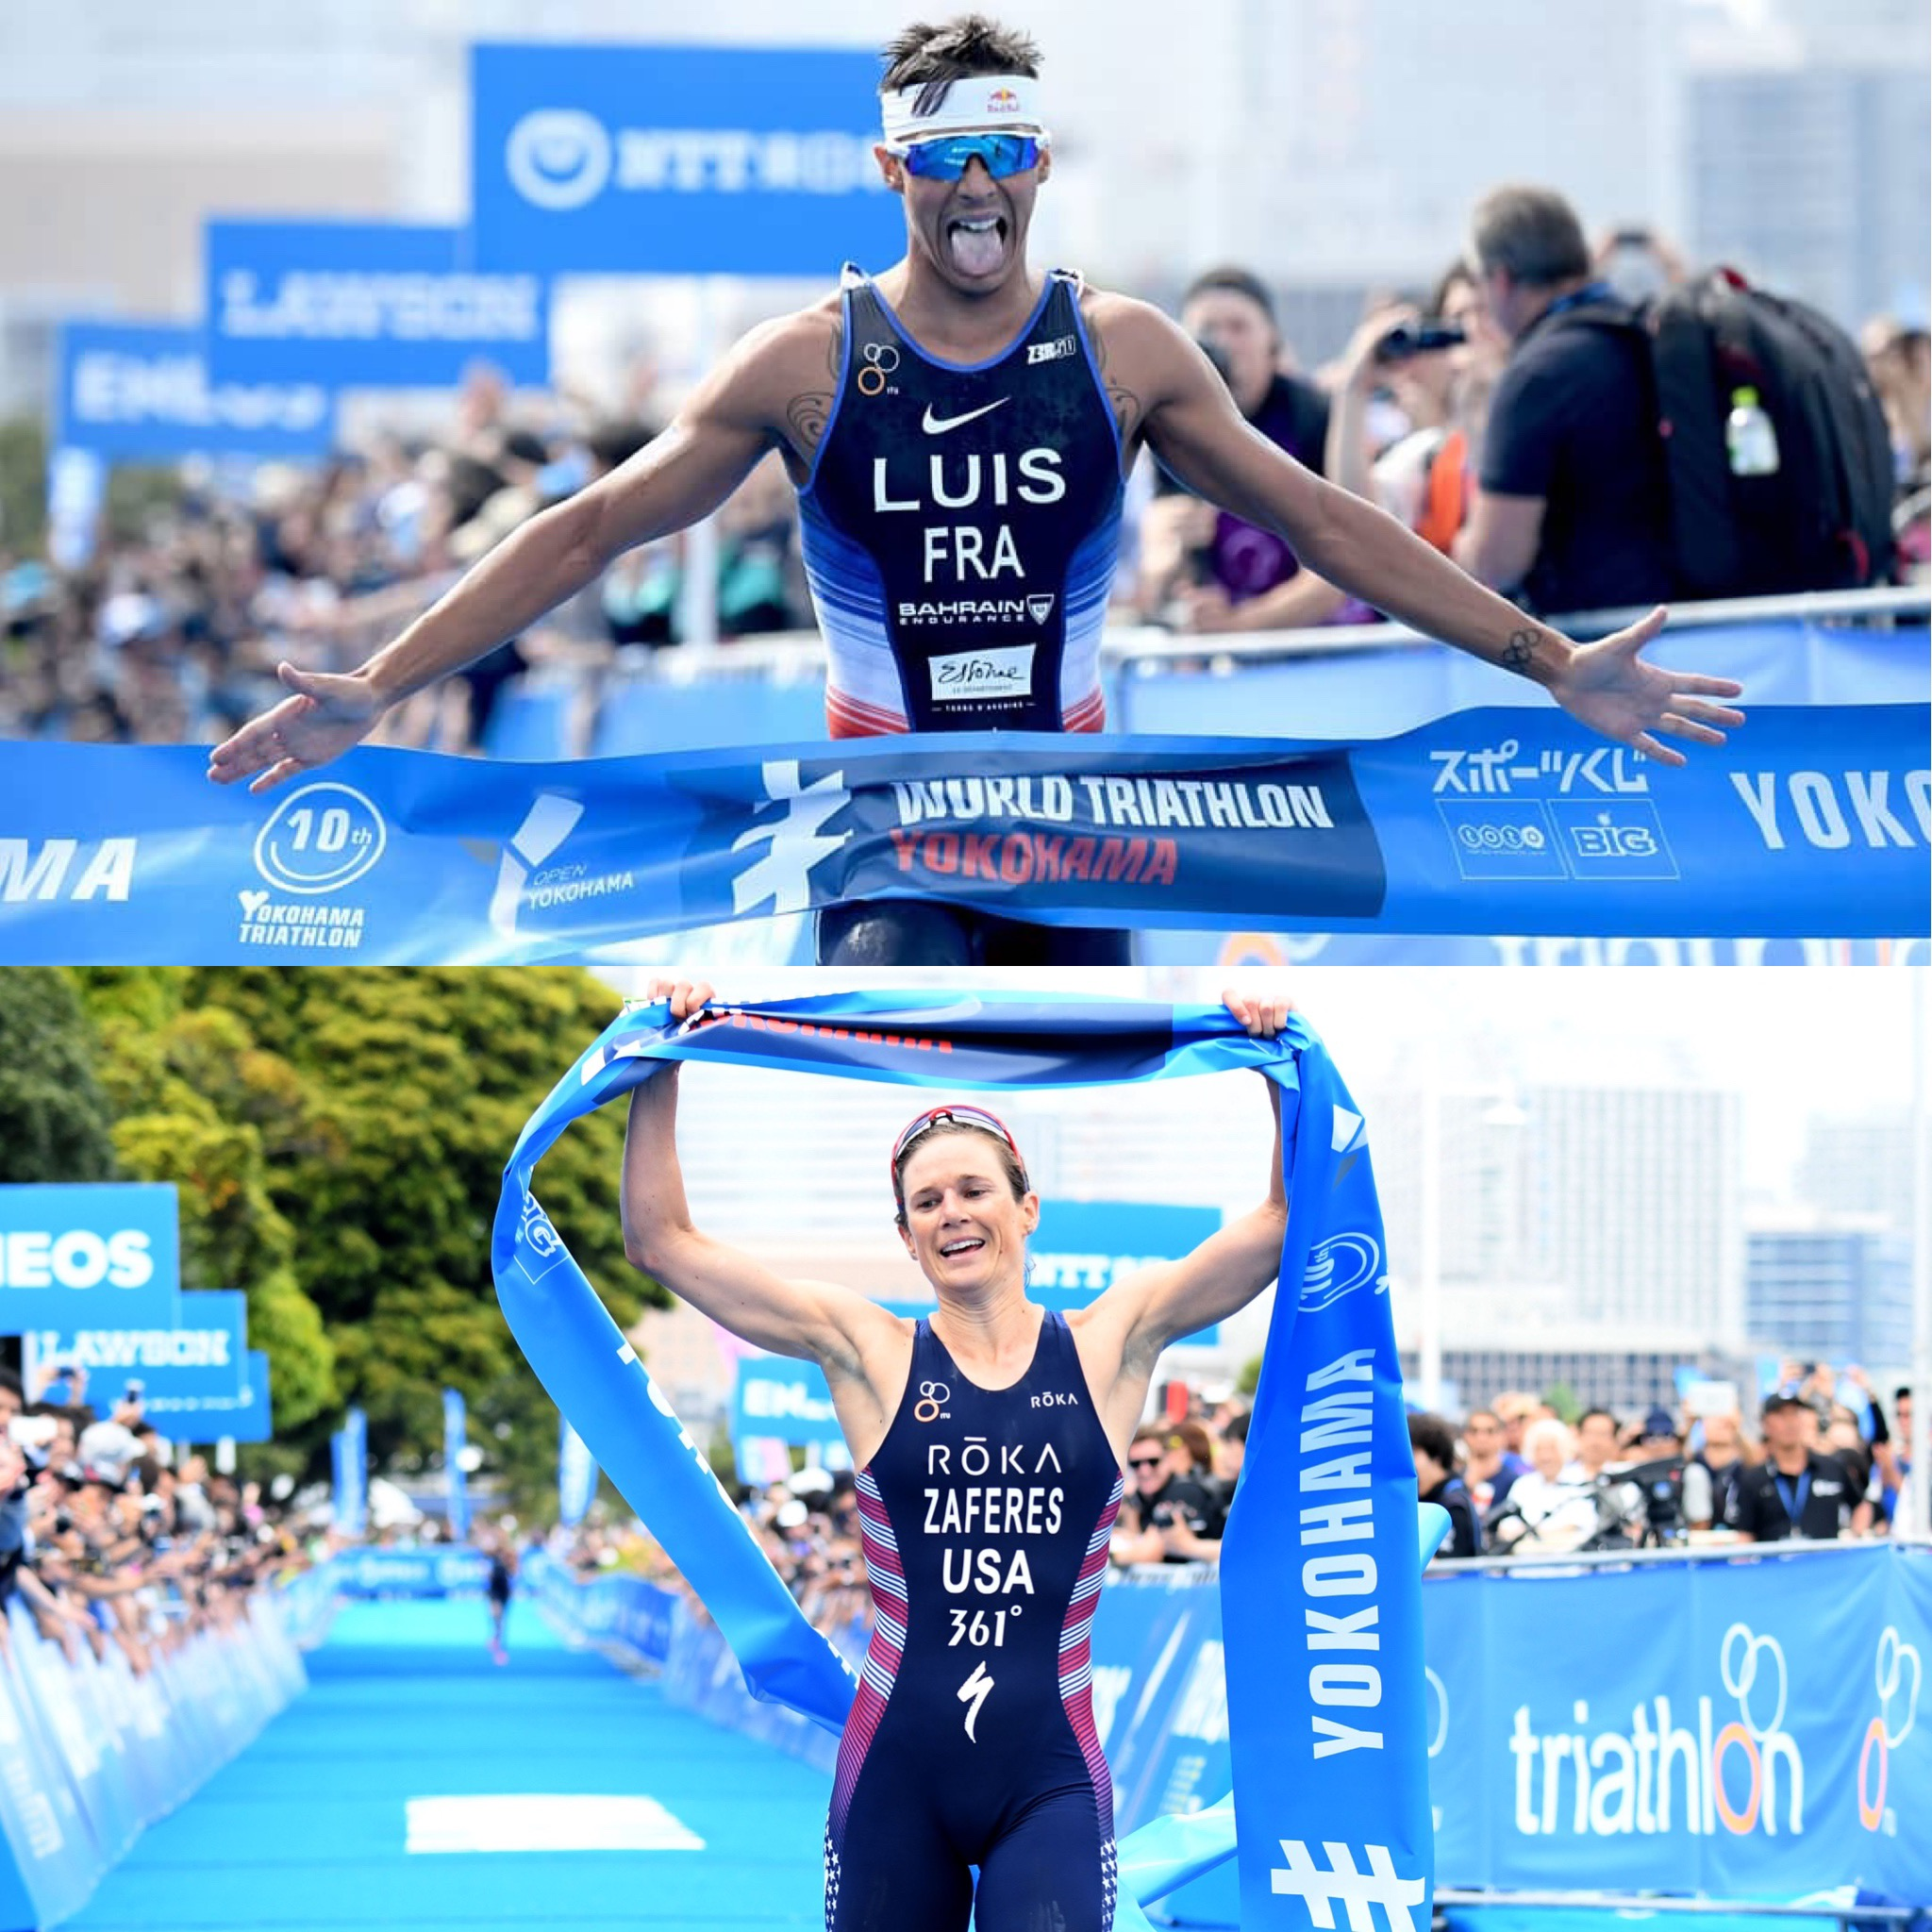 Winners of WTS Yokohama 2019 Vincent Luis and Katie Zaferes